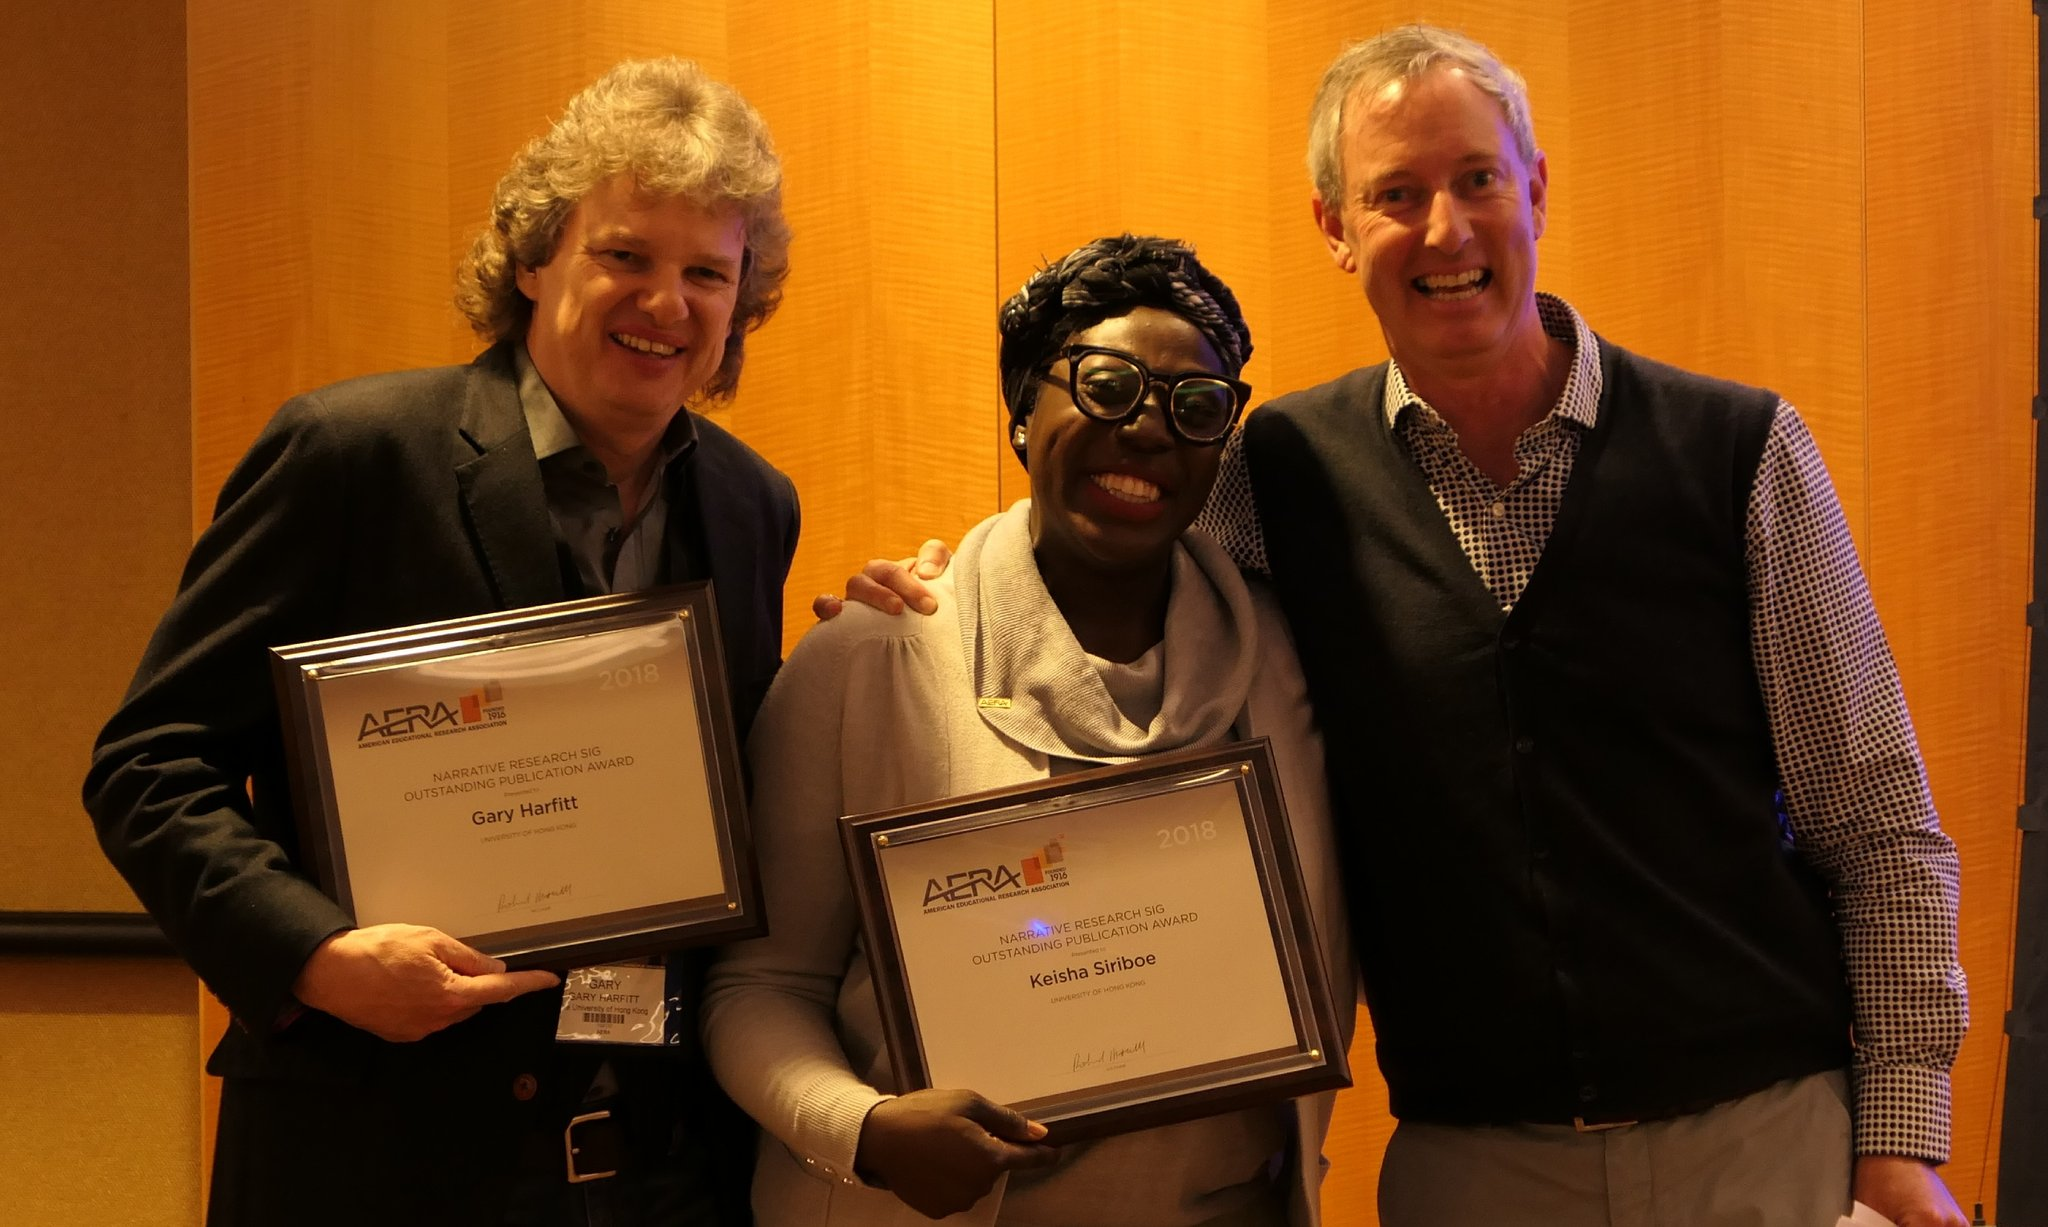 Miss Keisha Siriboe (centre) and Dr Gary Harfitt (left) received the award at the Narrative Research SIG Business Meeting.